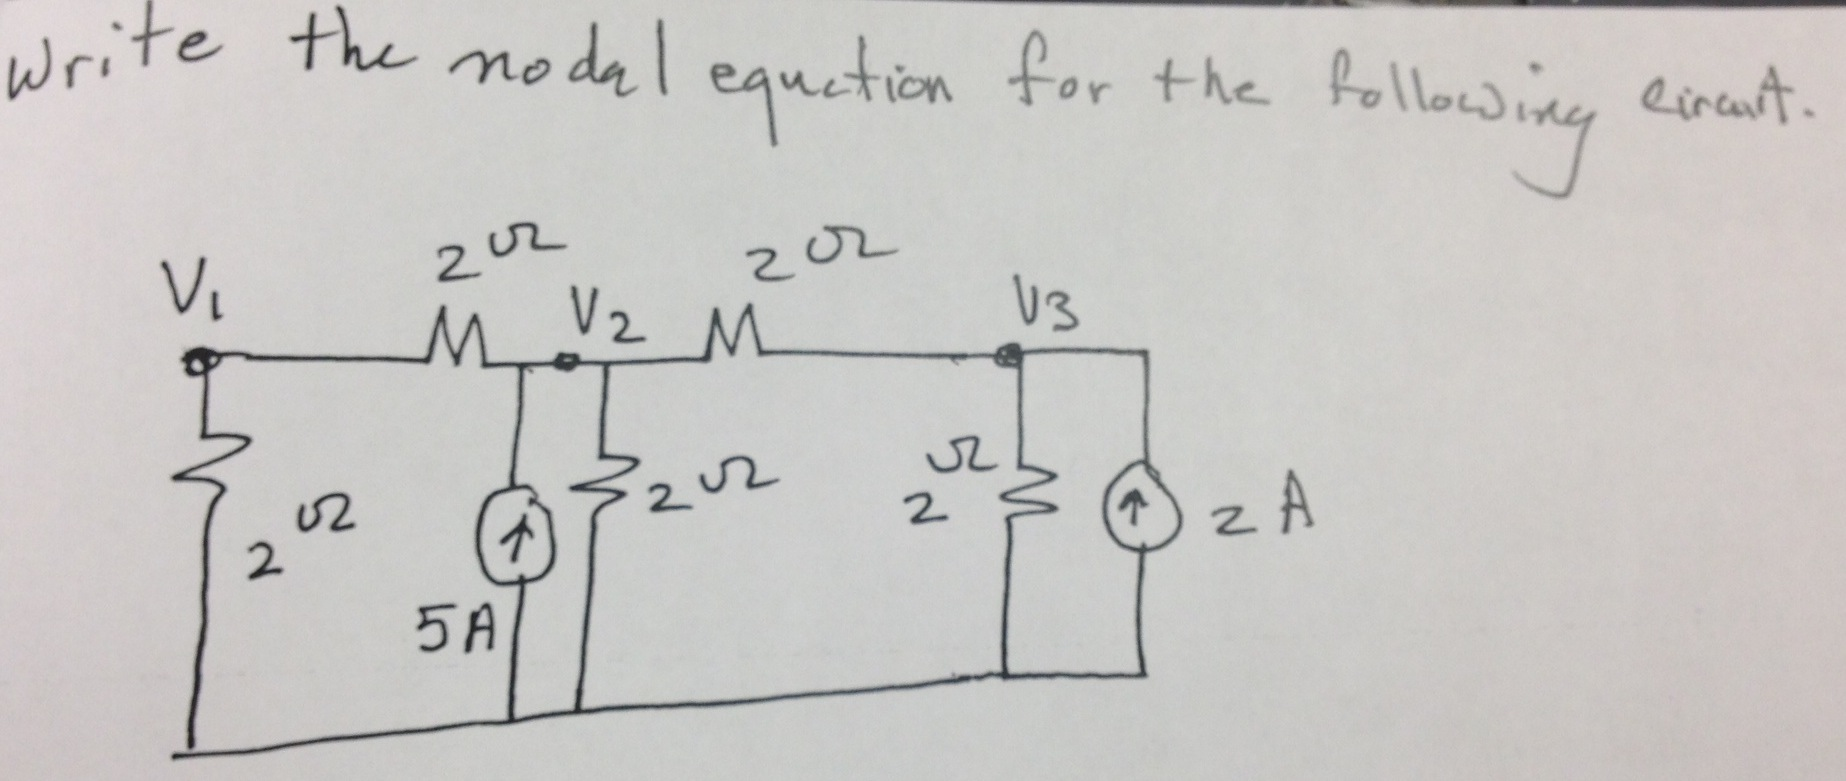 Write the nodal equation for the following circuit